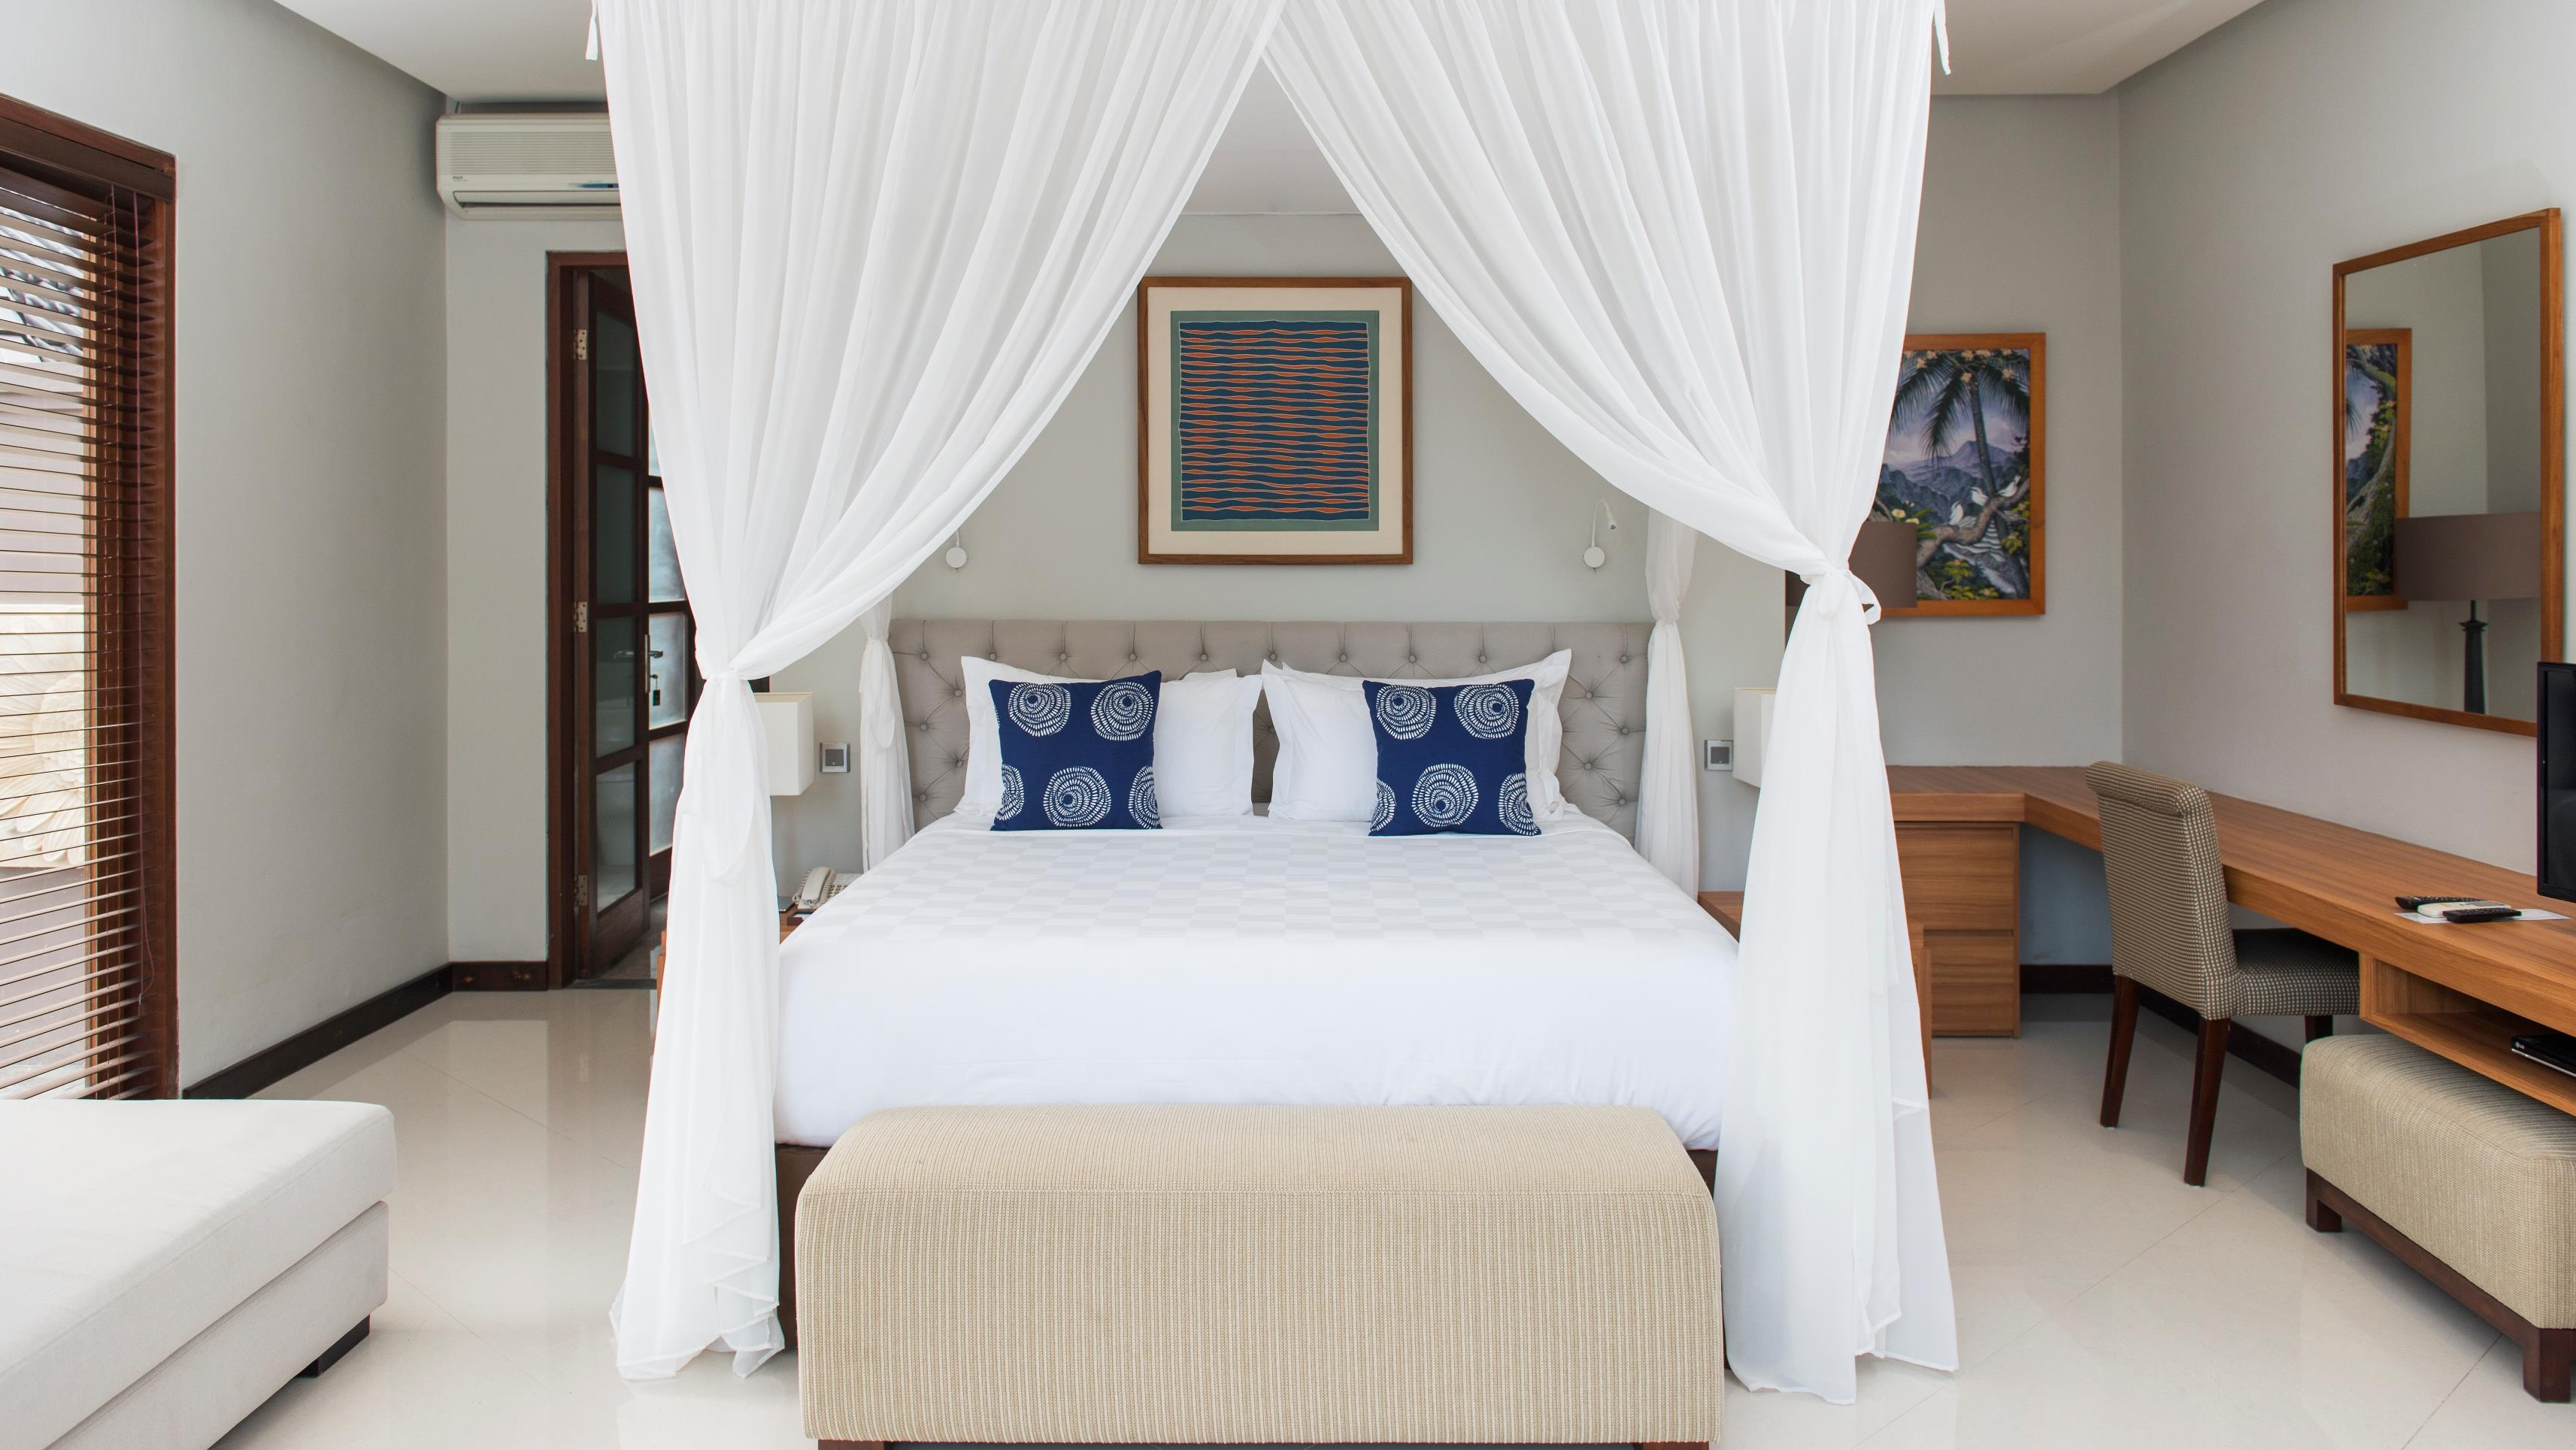 Bedroom with Study Table - Akara Villas M - Seminyak, Bali